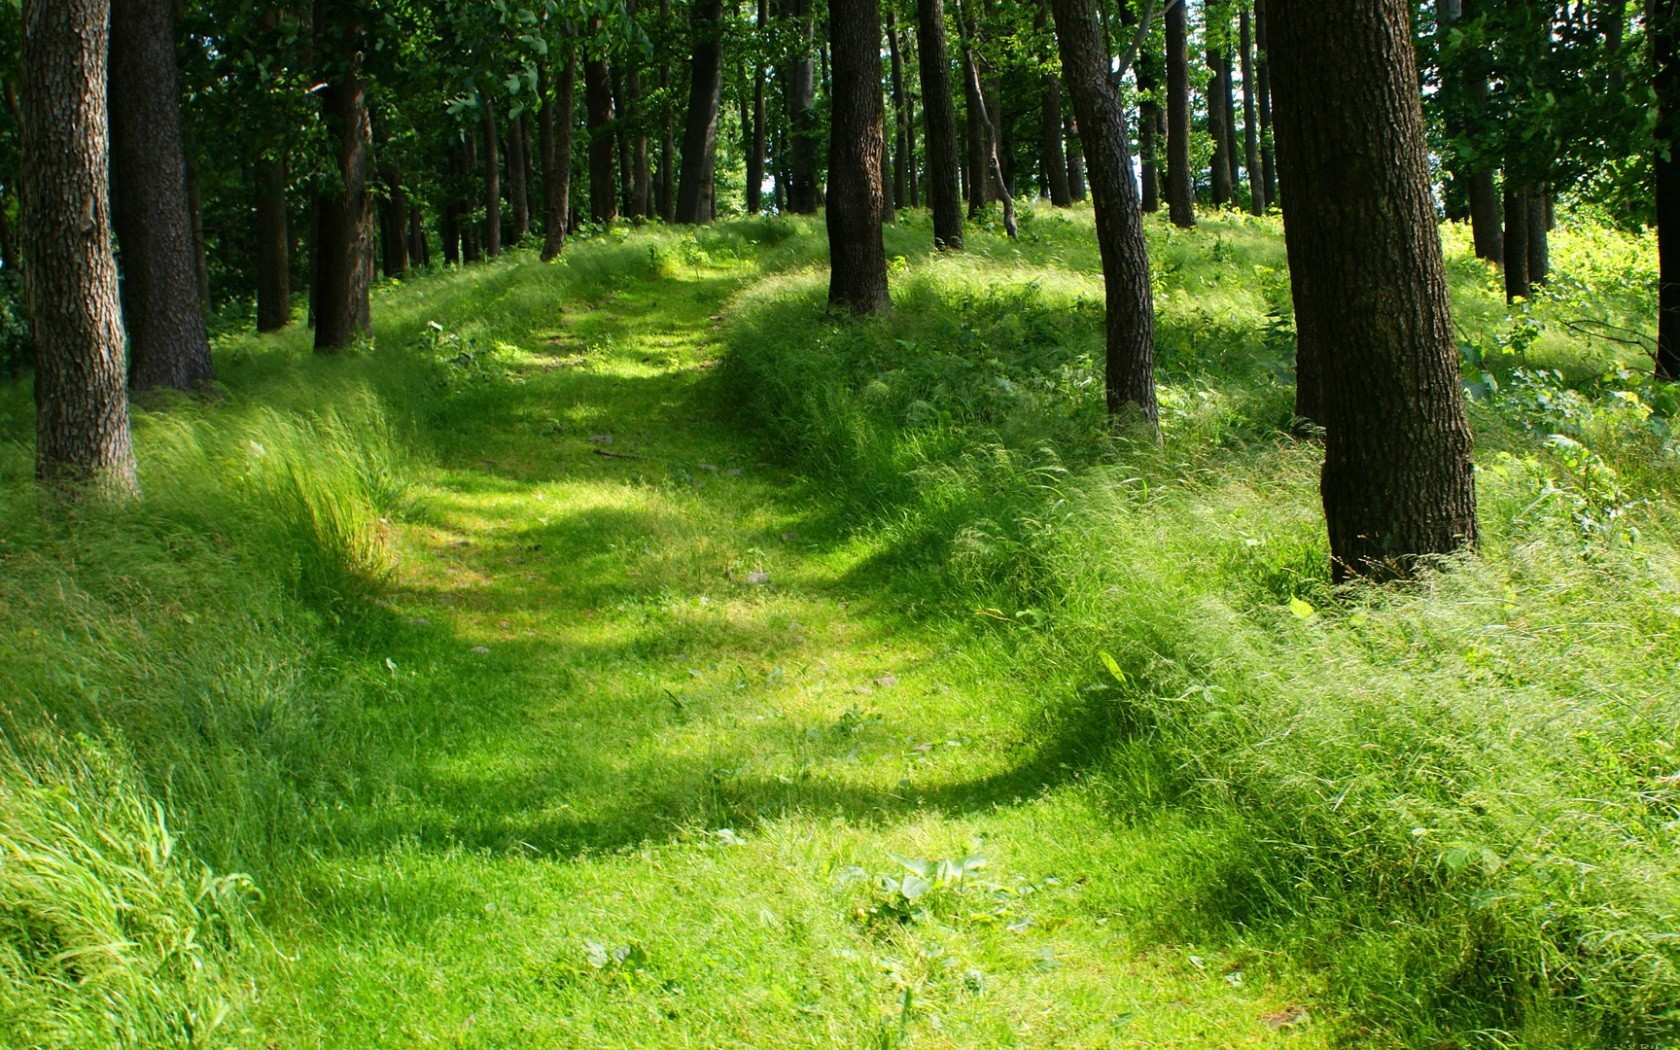 nature Trees forests paths HD Wallpaper